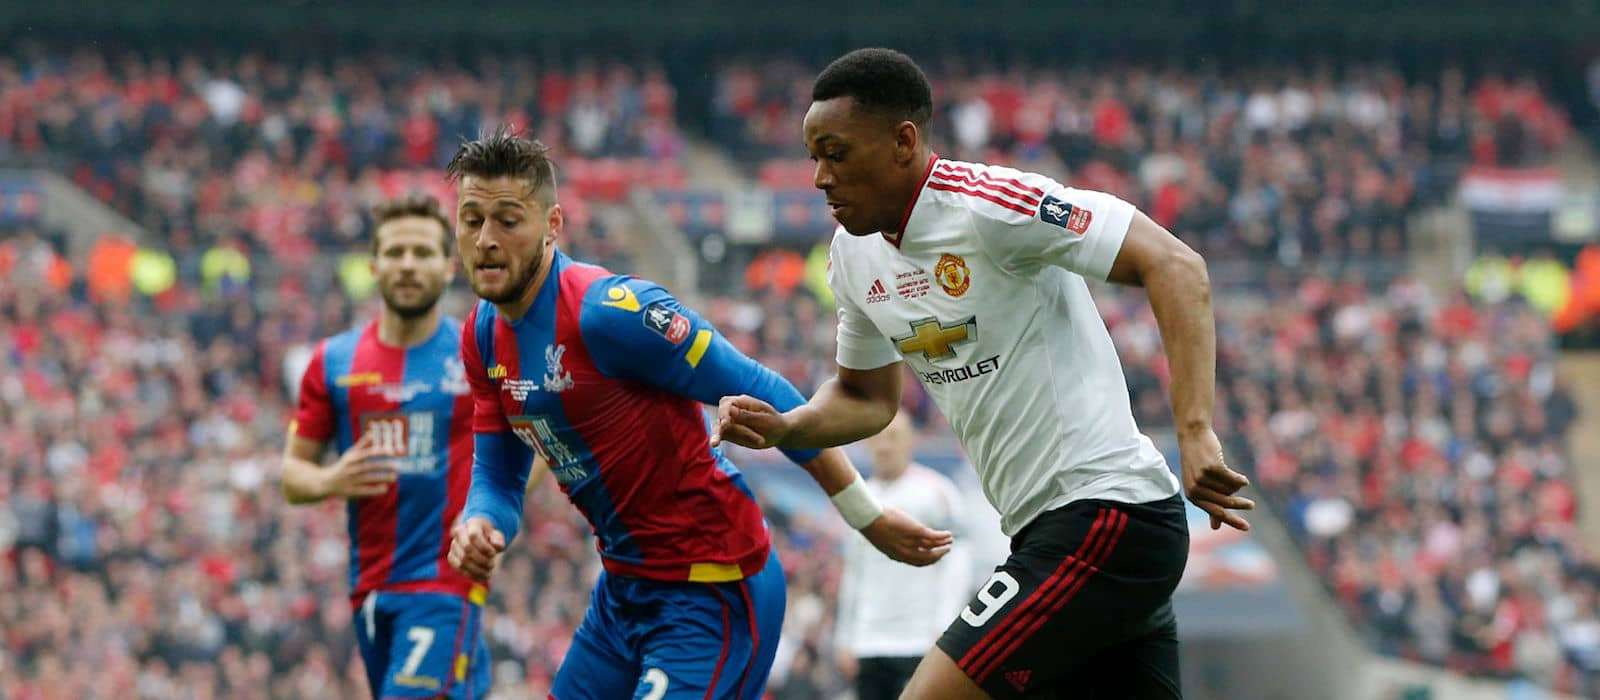 Dwight Yorke: Man United forward Anthony Martial will only get better and better